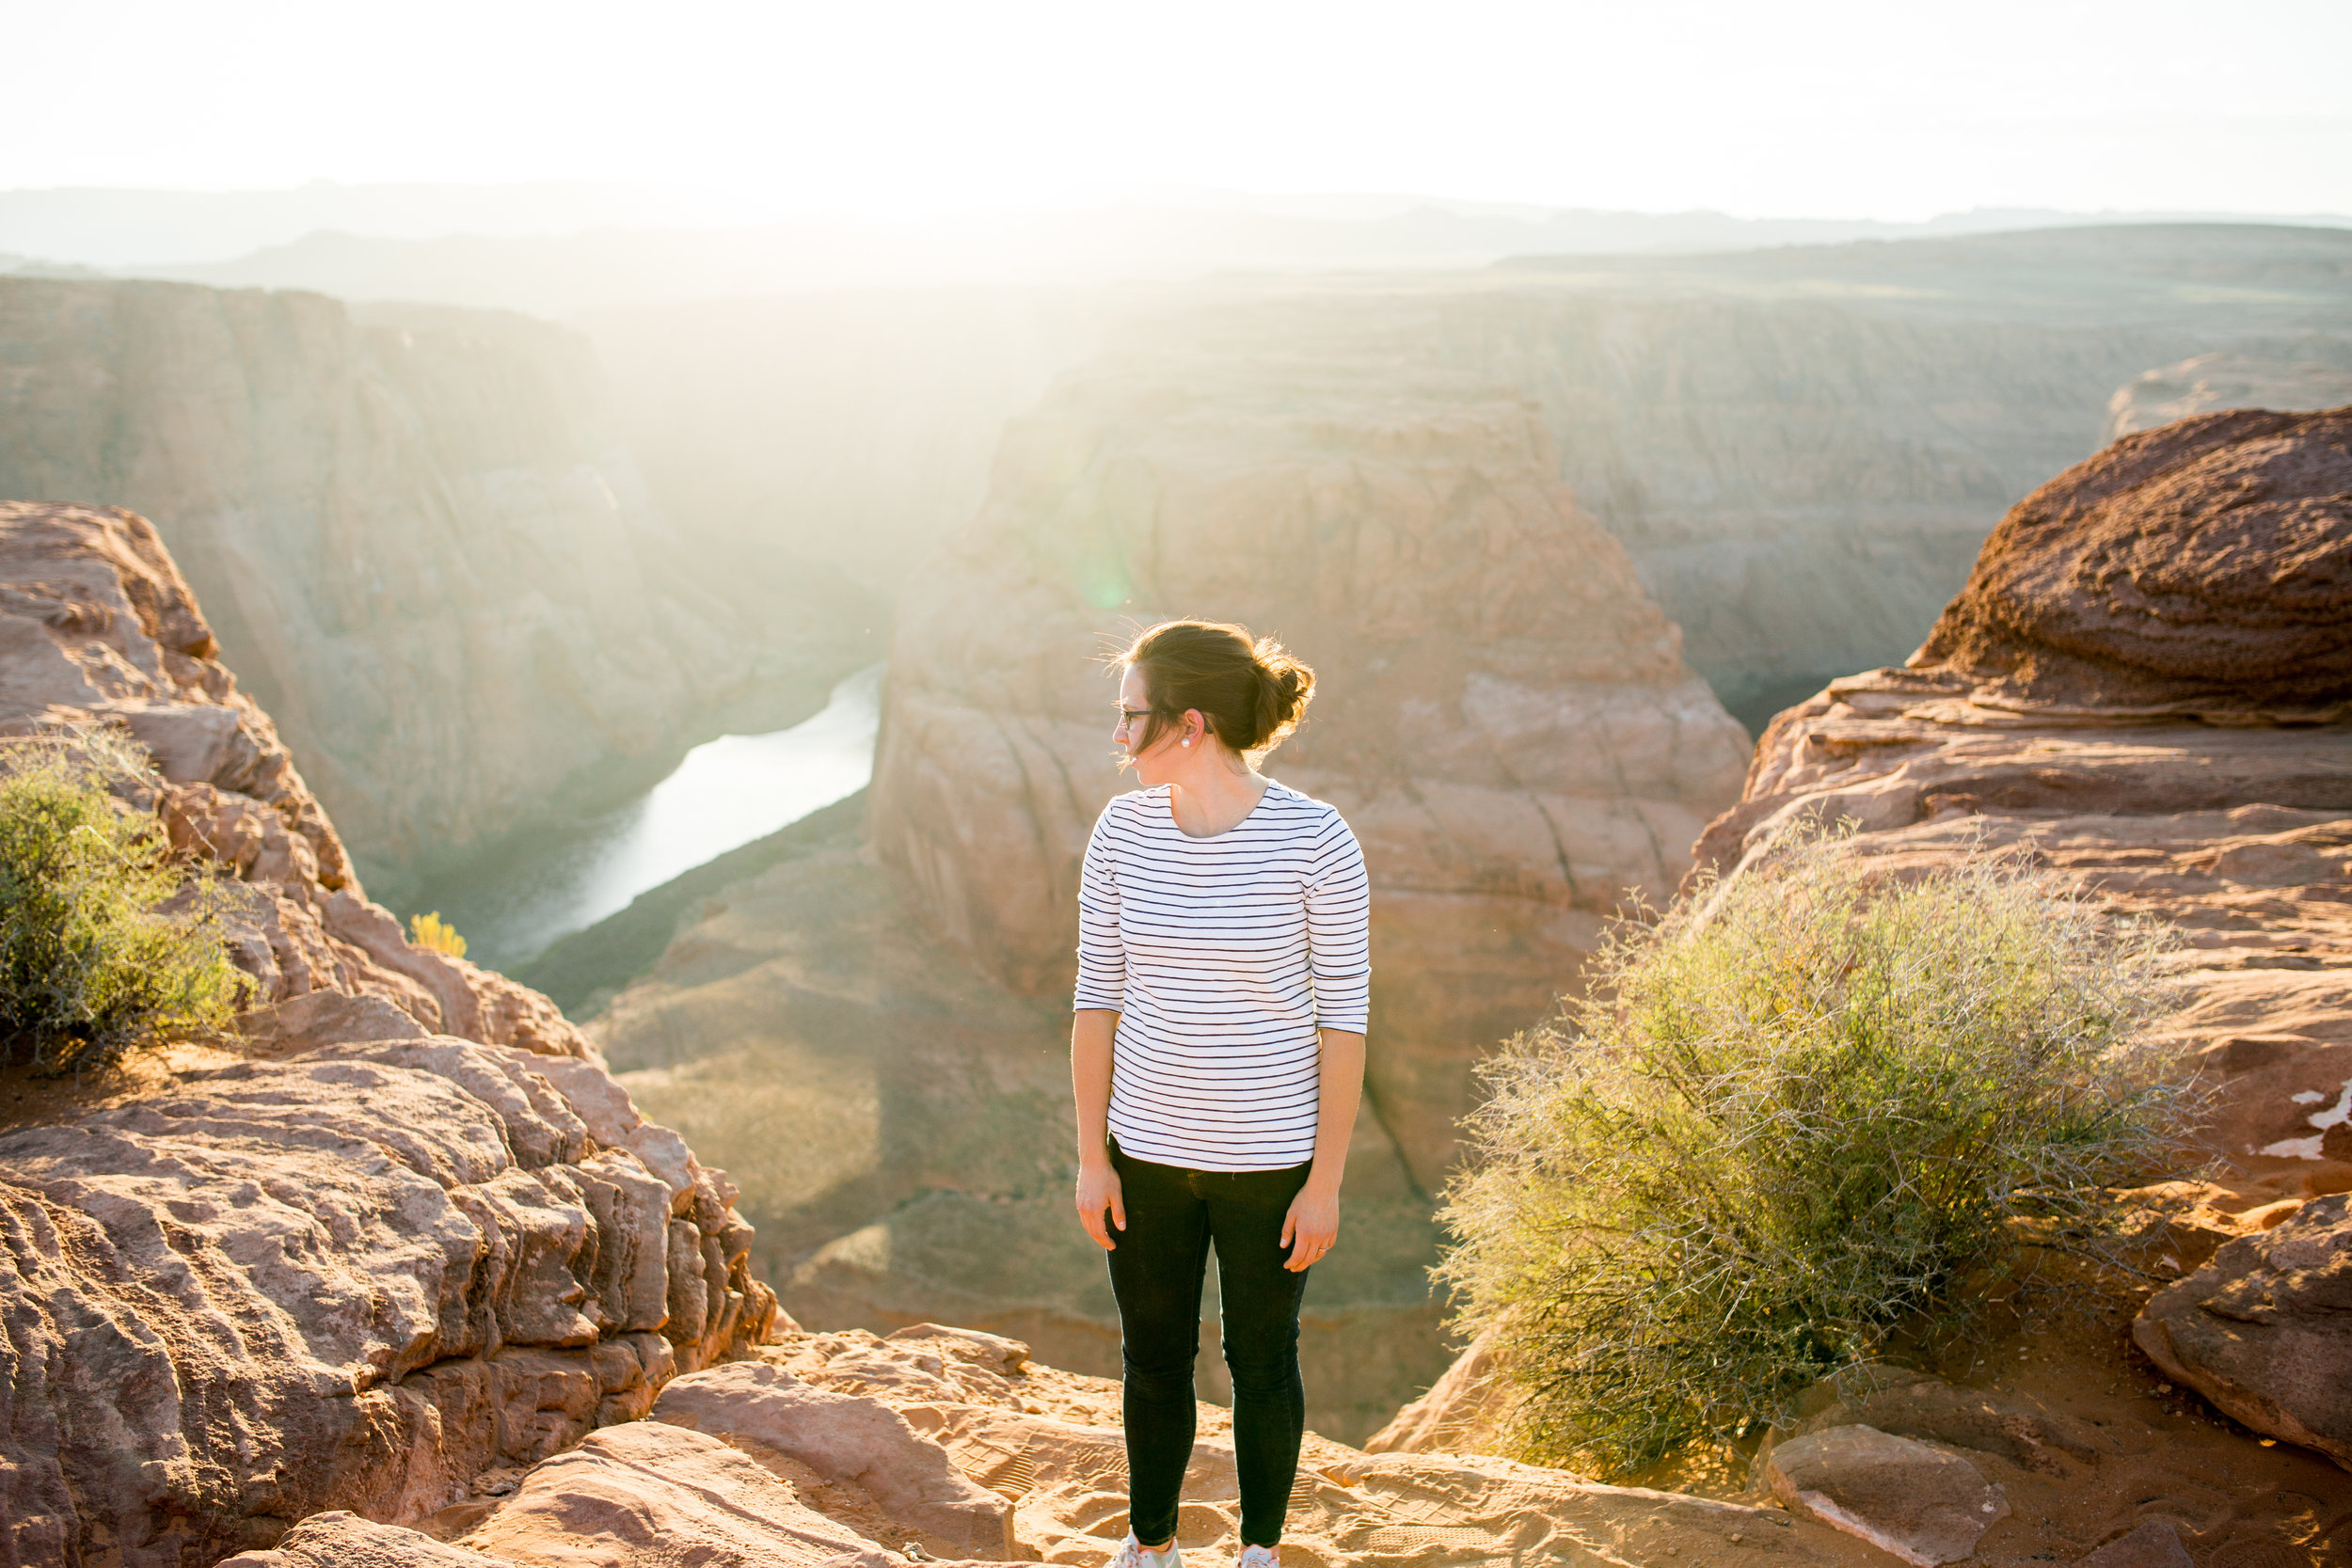 On our way to visit family in St. George, UT we made a stop to Horseshoe Bend in Arizona. Such an amazing part of this earth to experience!